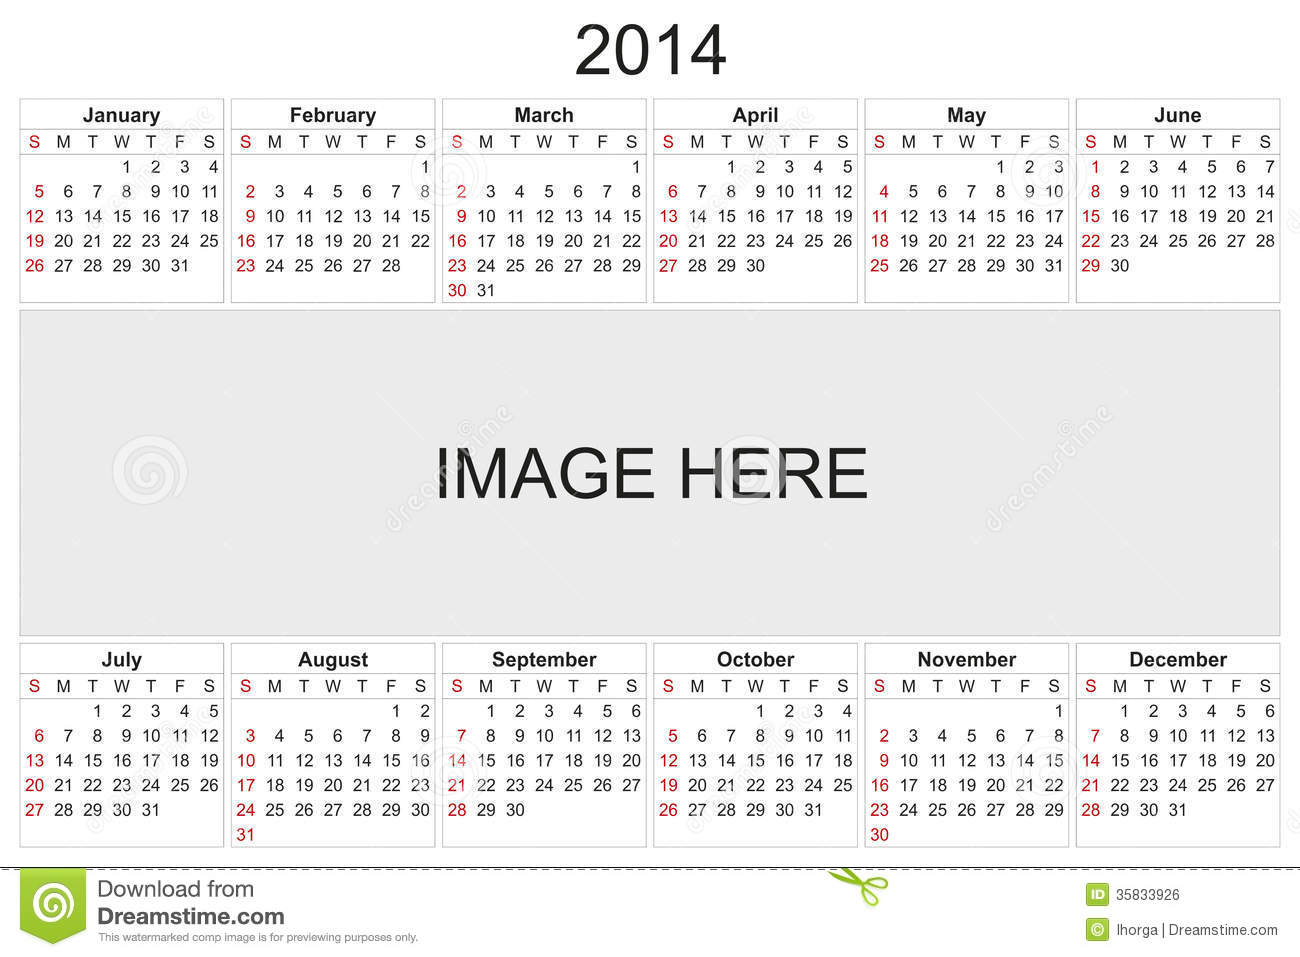 Calendar Design Software : Calendar royalty free stock image